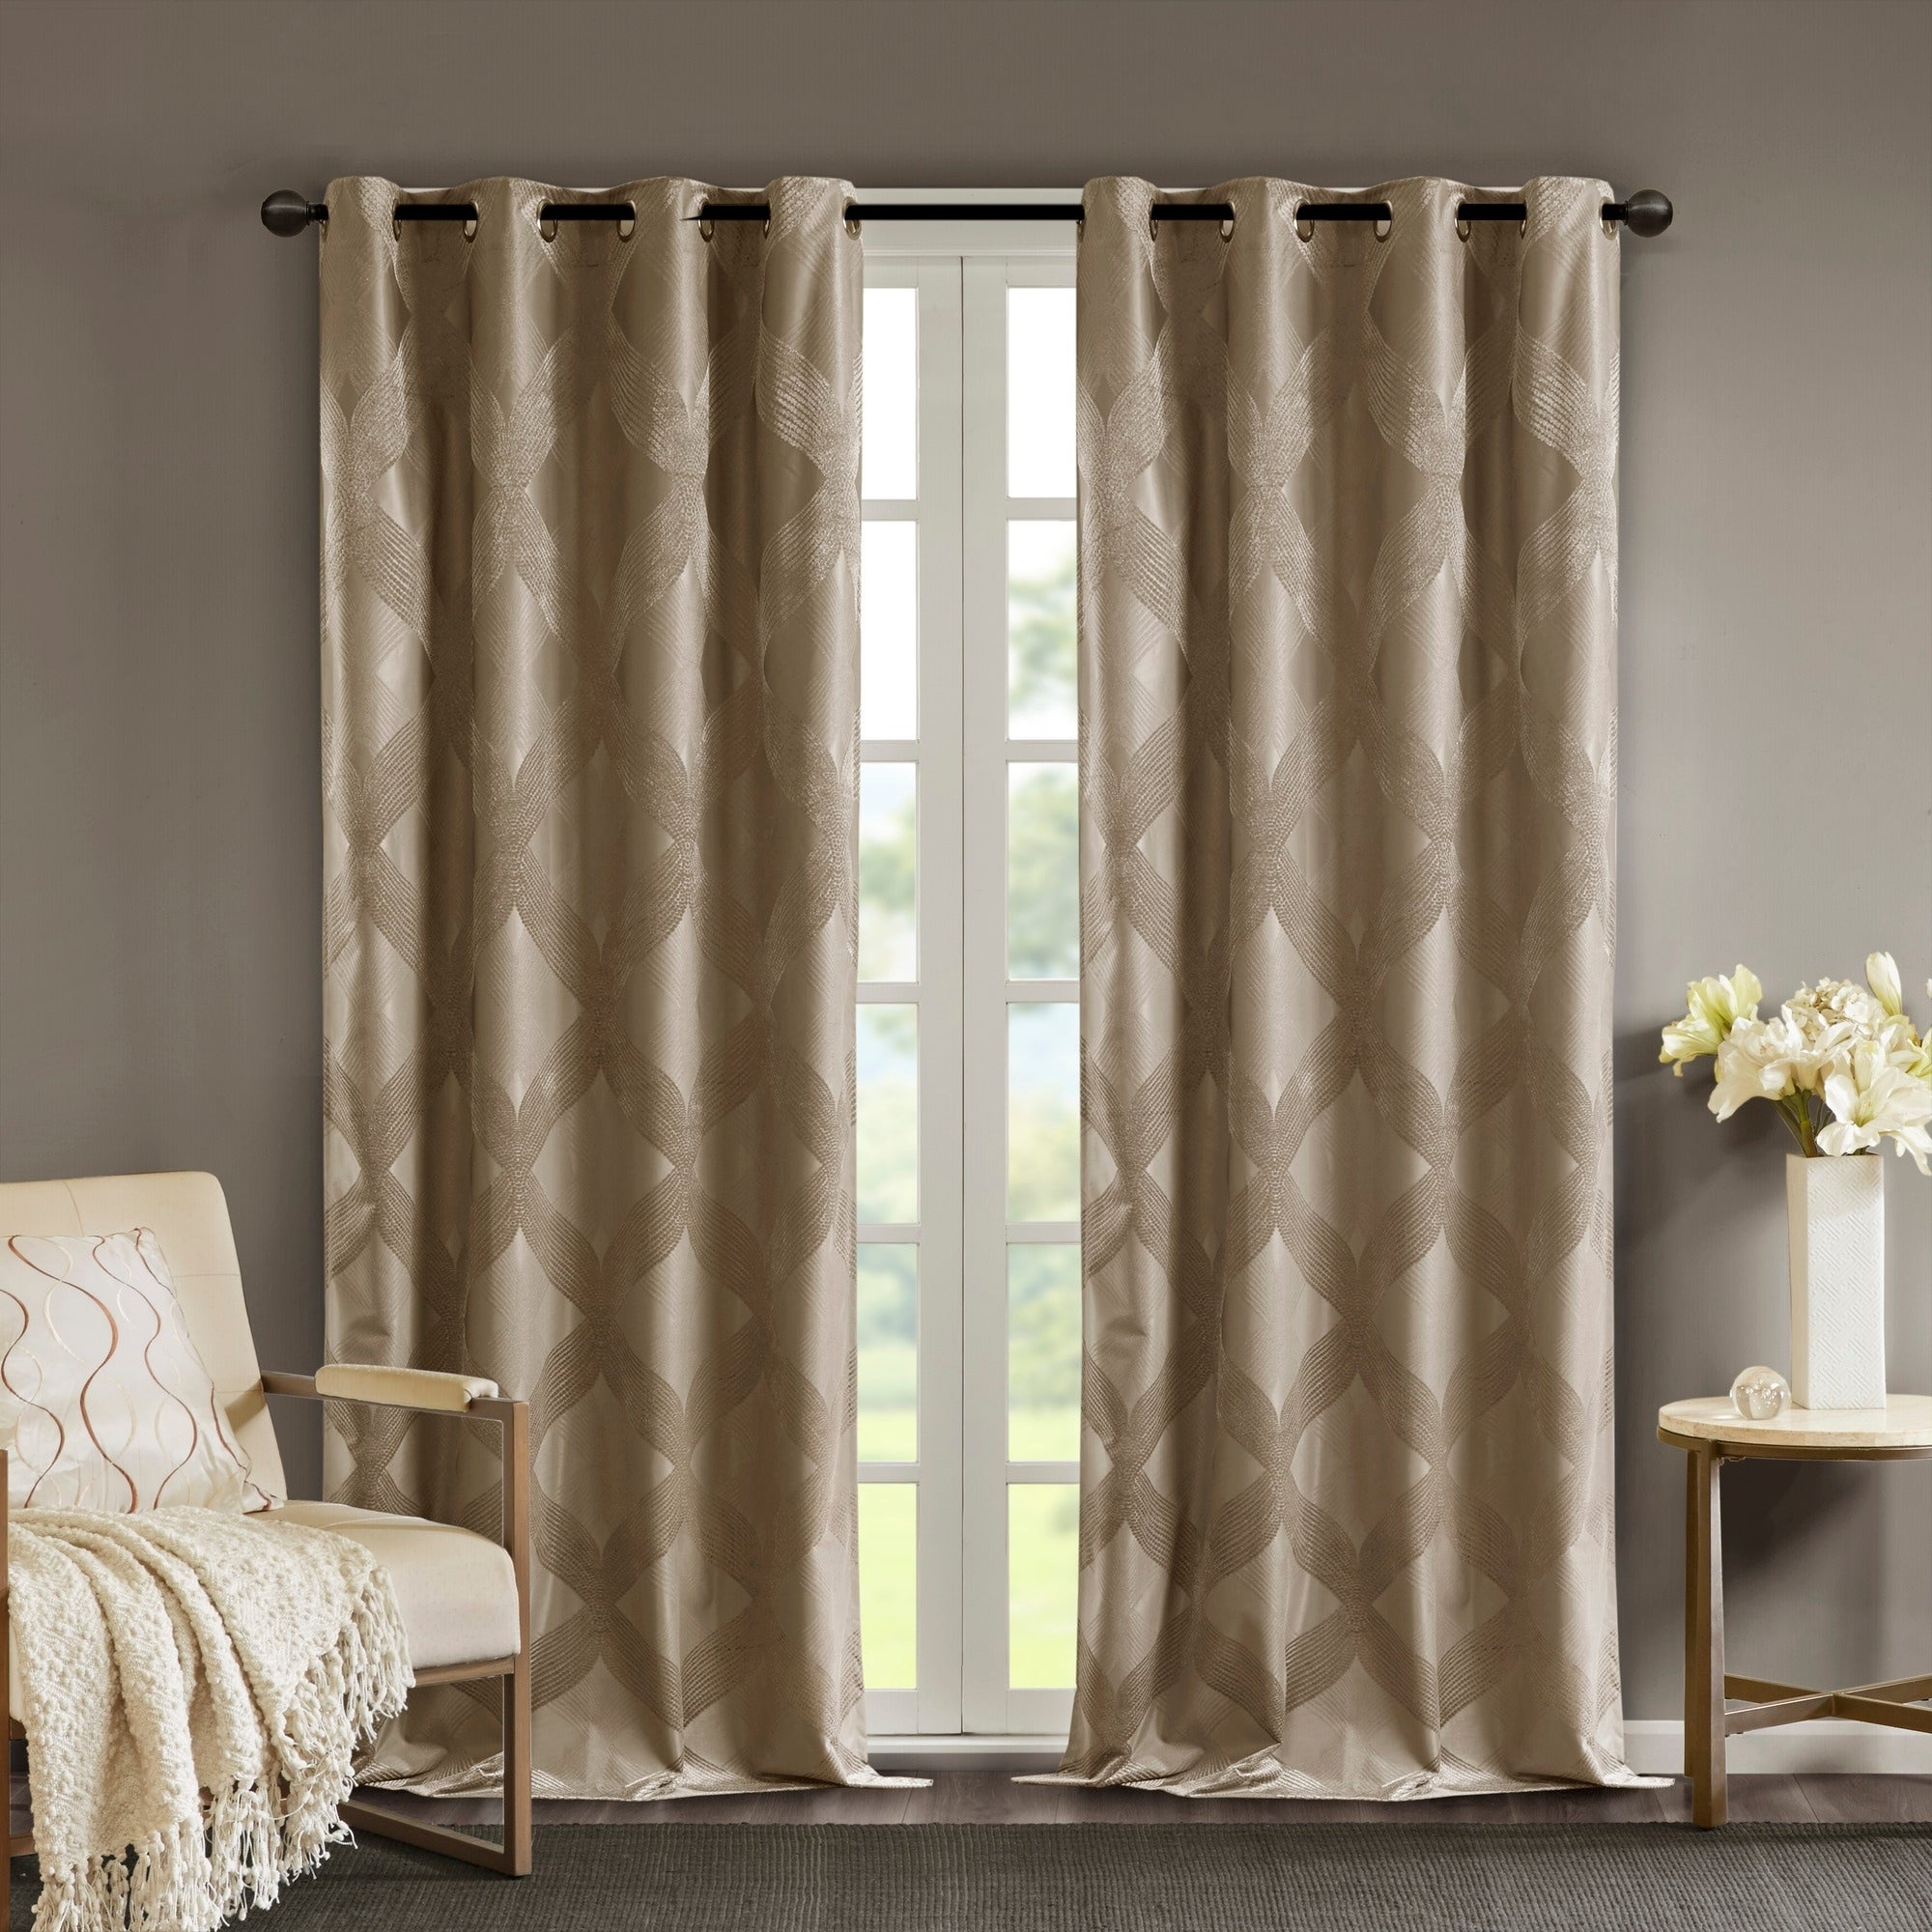 Sunsmart Abel Ogee Knitted Jacquard Total Blackout Curtain Panel With Regard To Recent Sunsmart Dahlia Paisley Printed Total Blackout Single Window Curtain Panels (View 19 of 20)